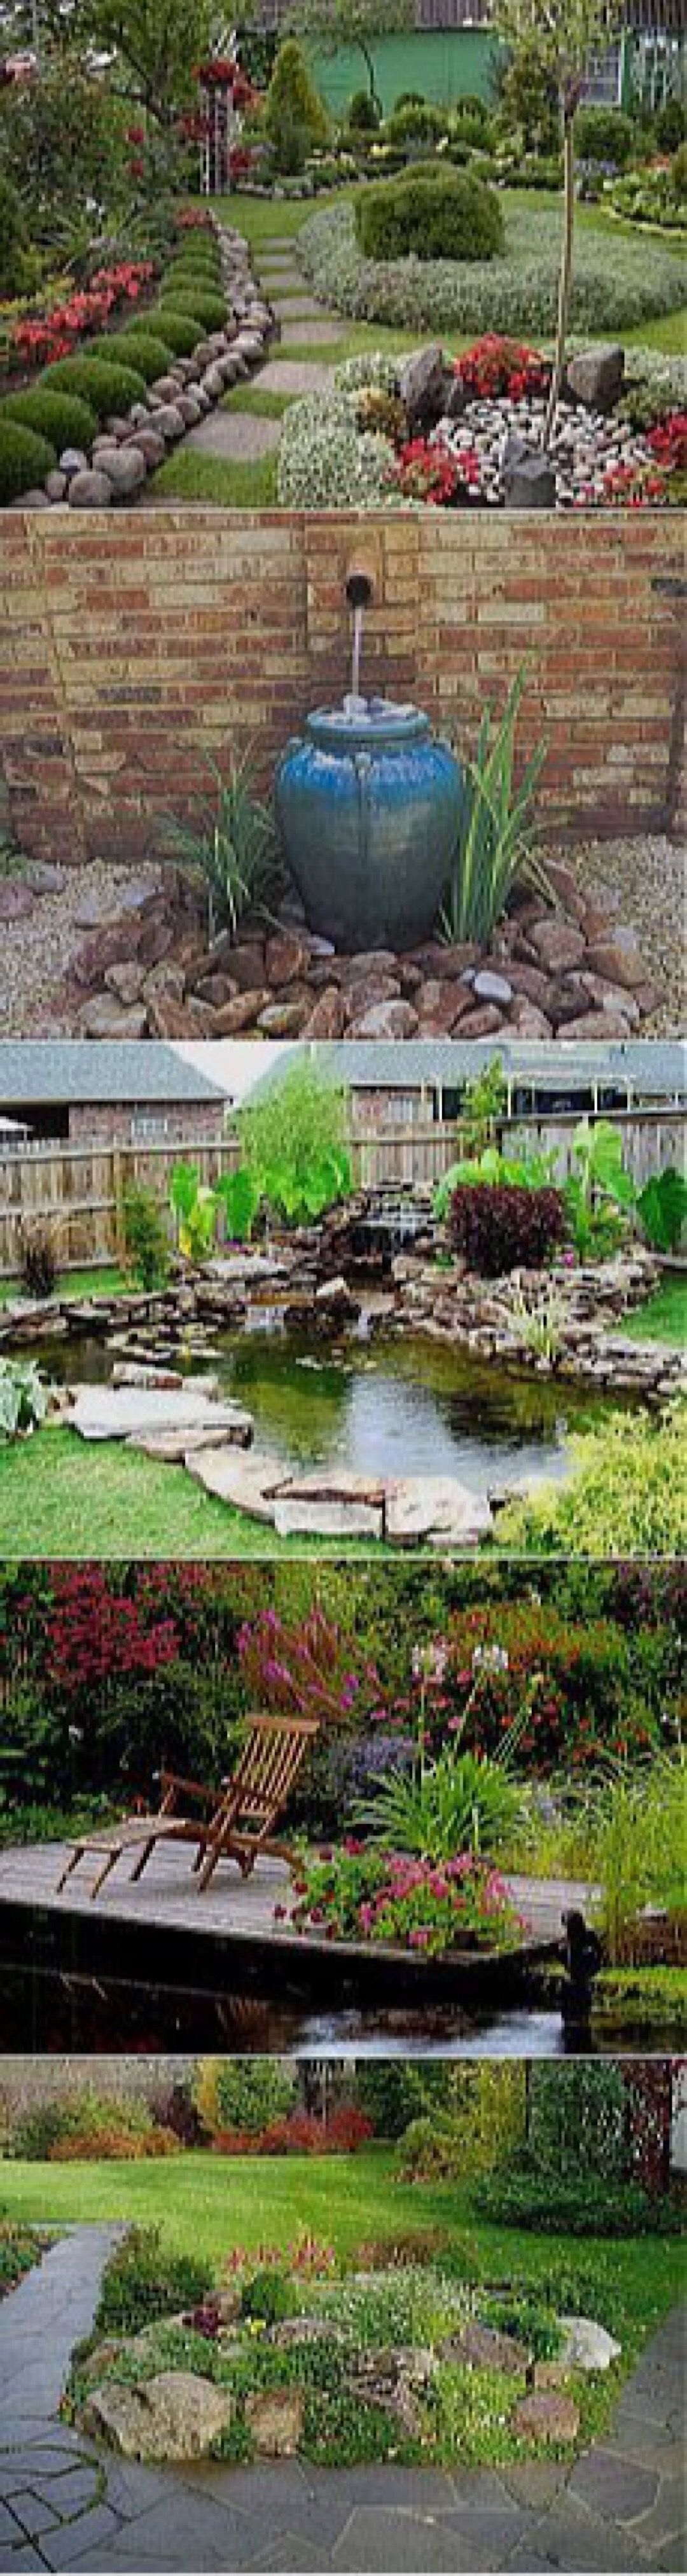 Gardenscapes And Garden Feature Ideas From Clipboards, Pinterest ...